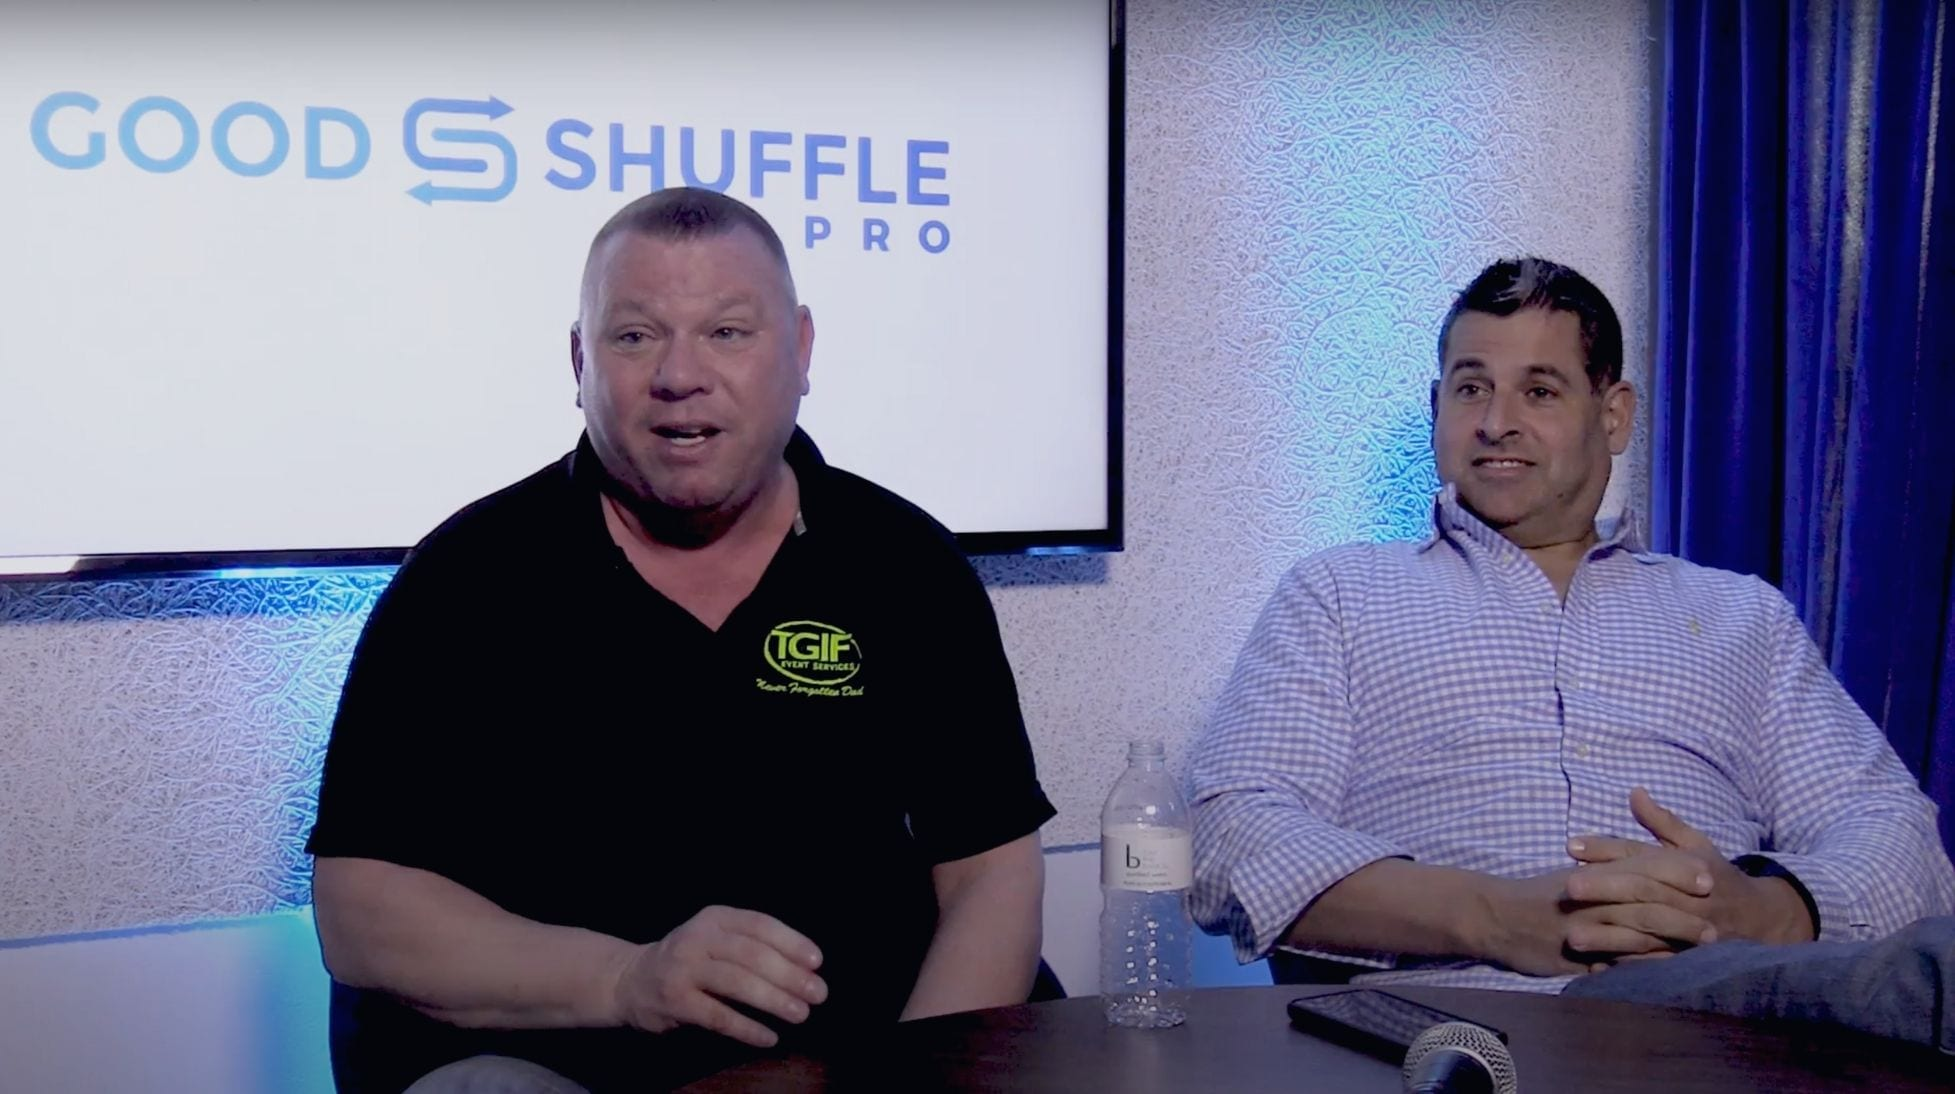 goodshuffle pro reviews by customers